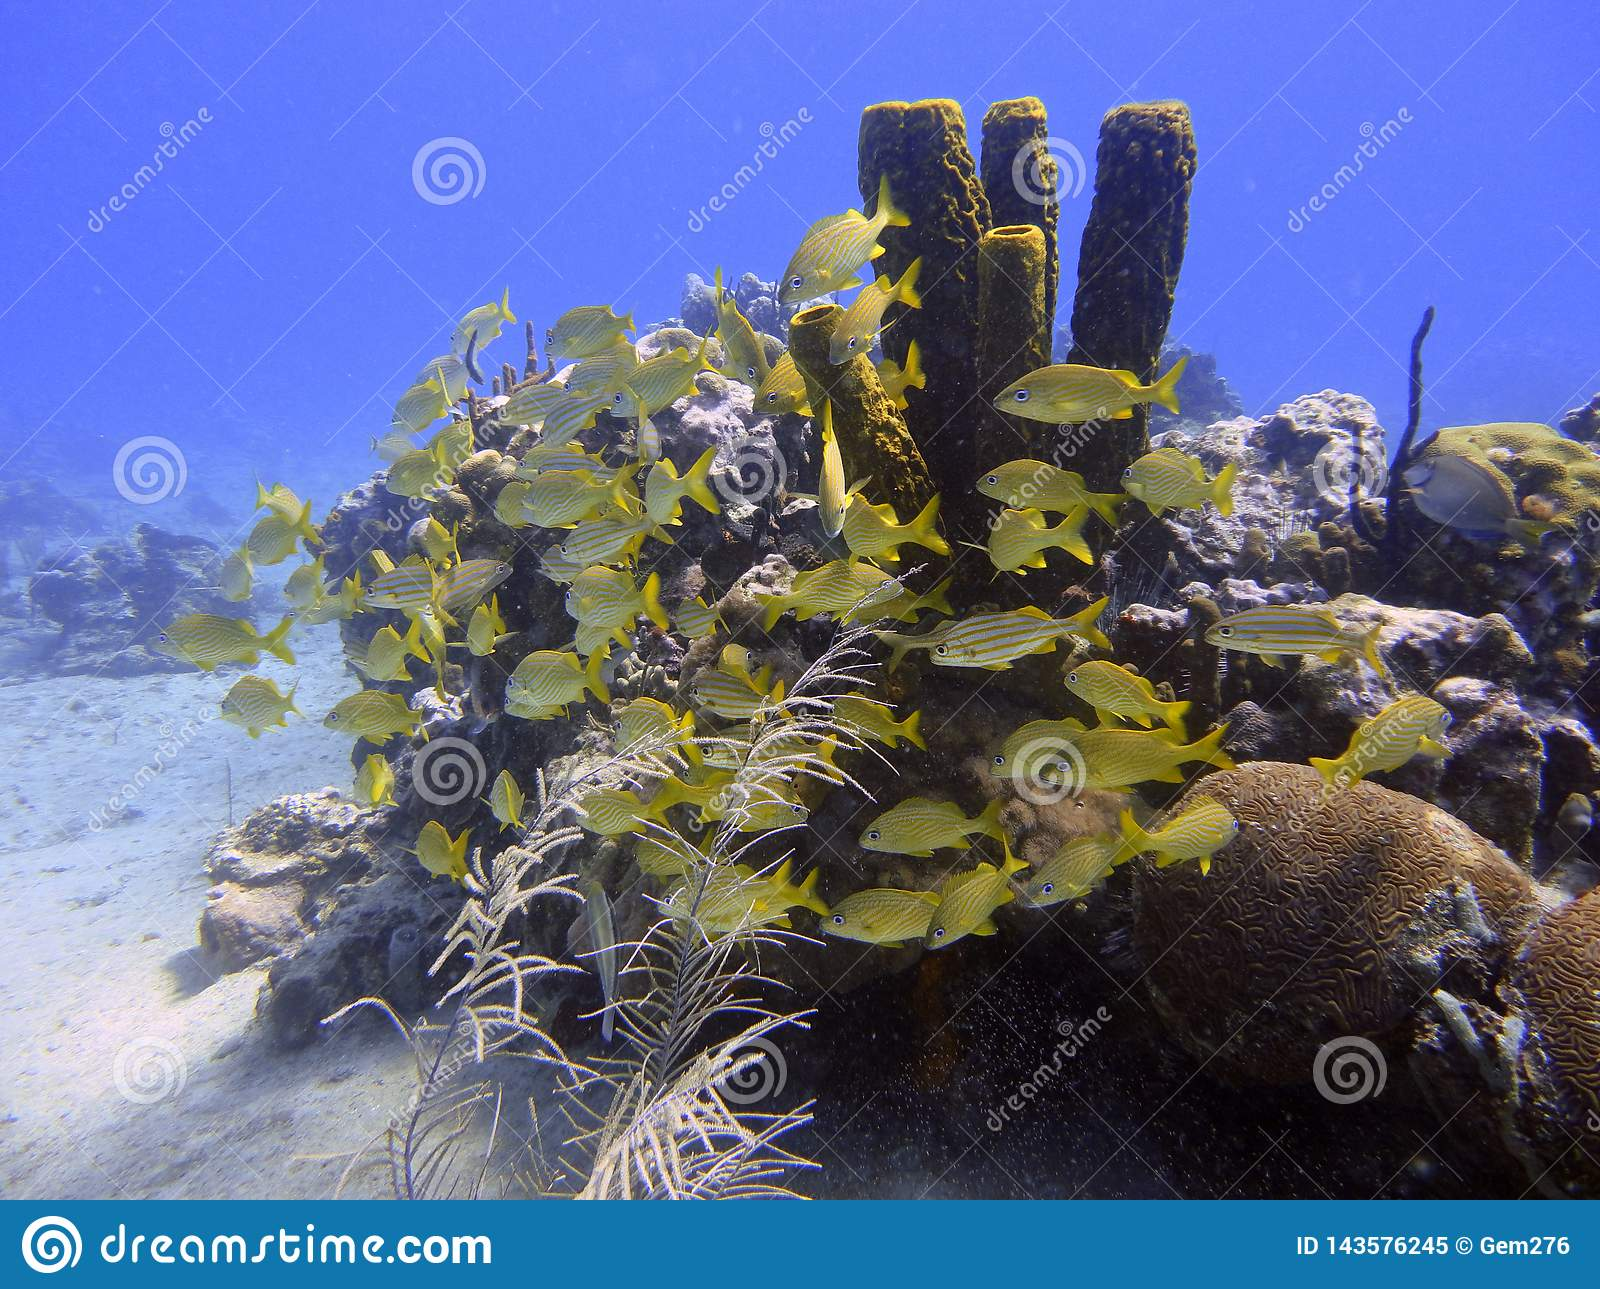 School of fish on the seabed